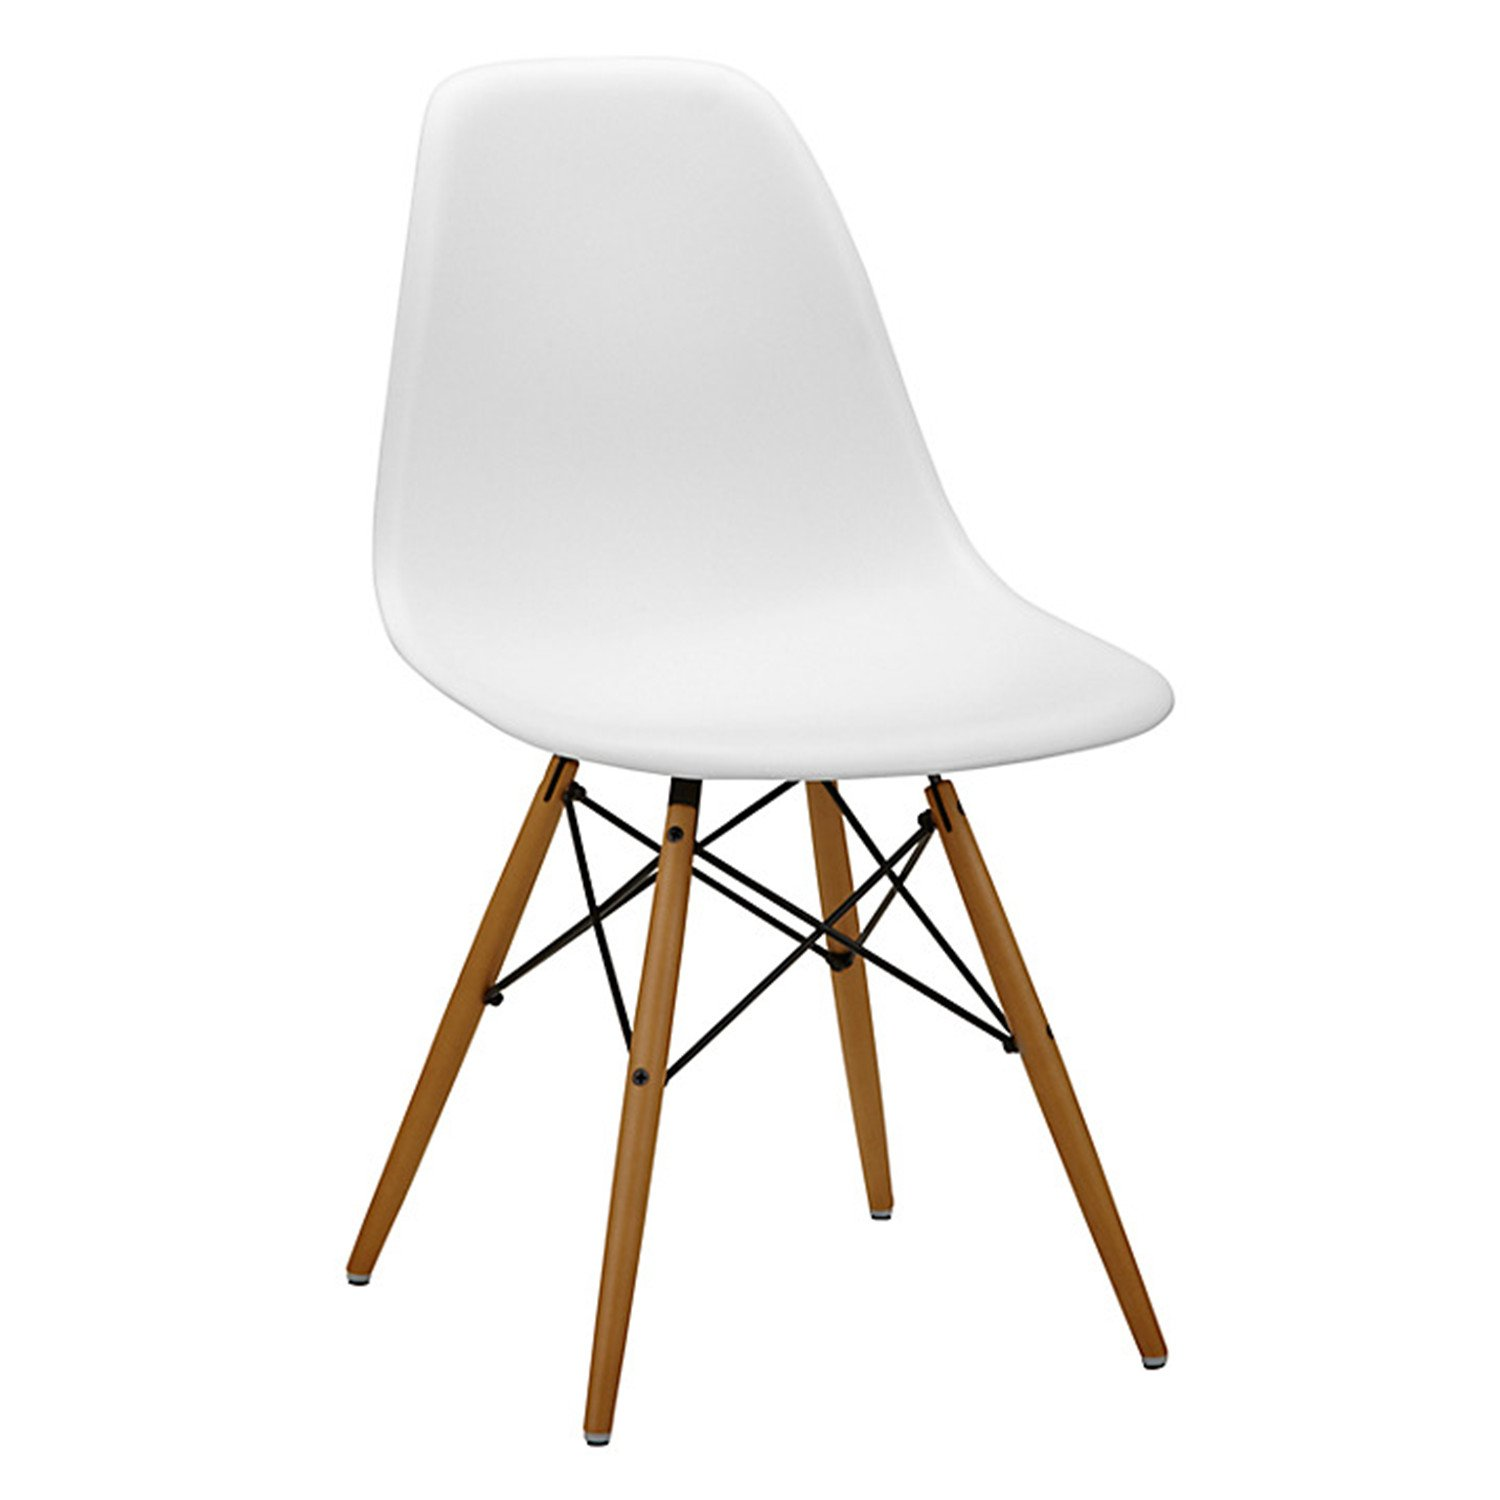 Outstanding Set Of 6 Charles Ray Eames Style Replica Dsw Eiffel Dining Lounge Chair White X 6 By Mmilo Pdpeps Interior Chair Design Pdpepsorg